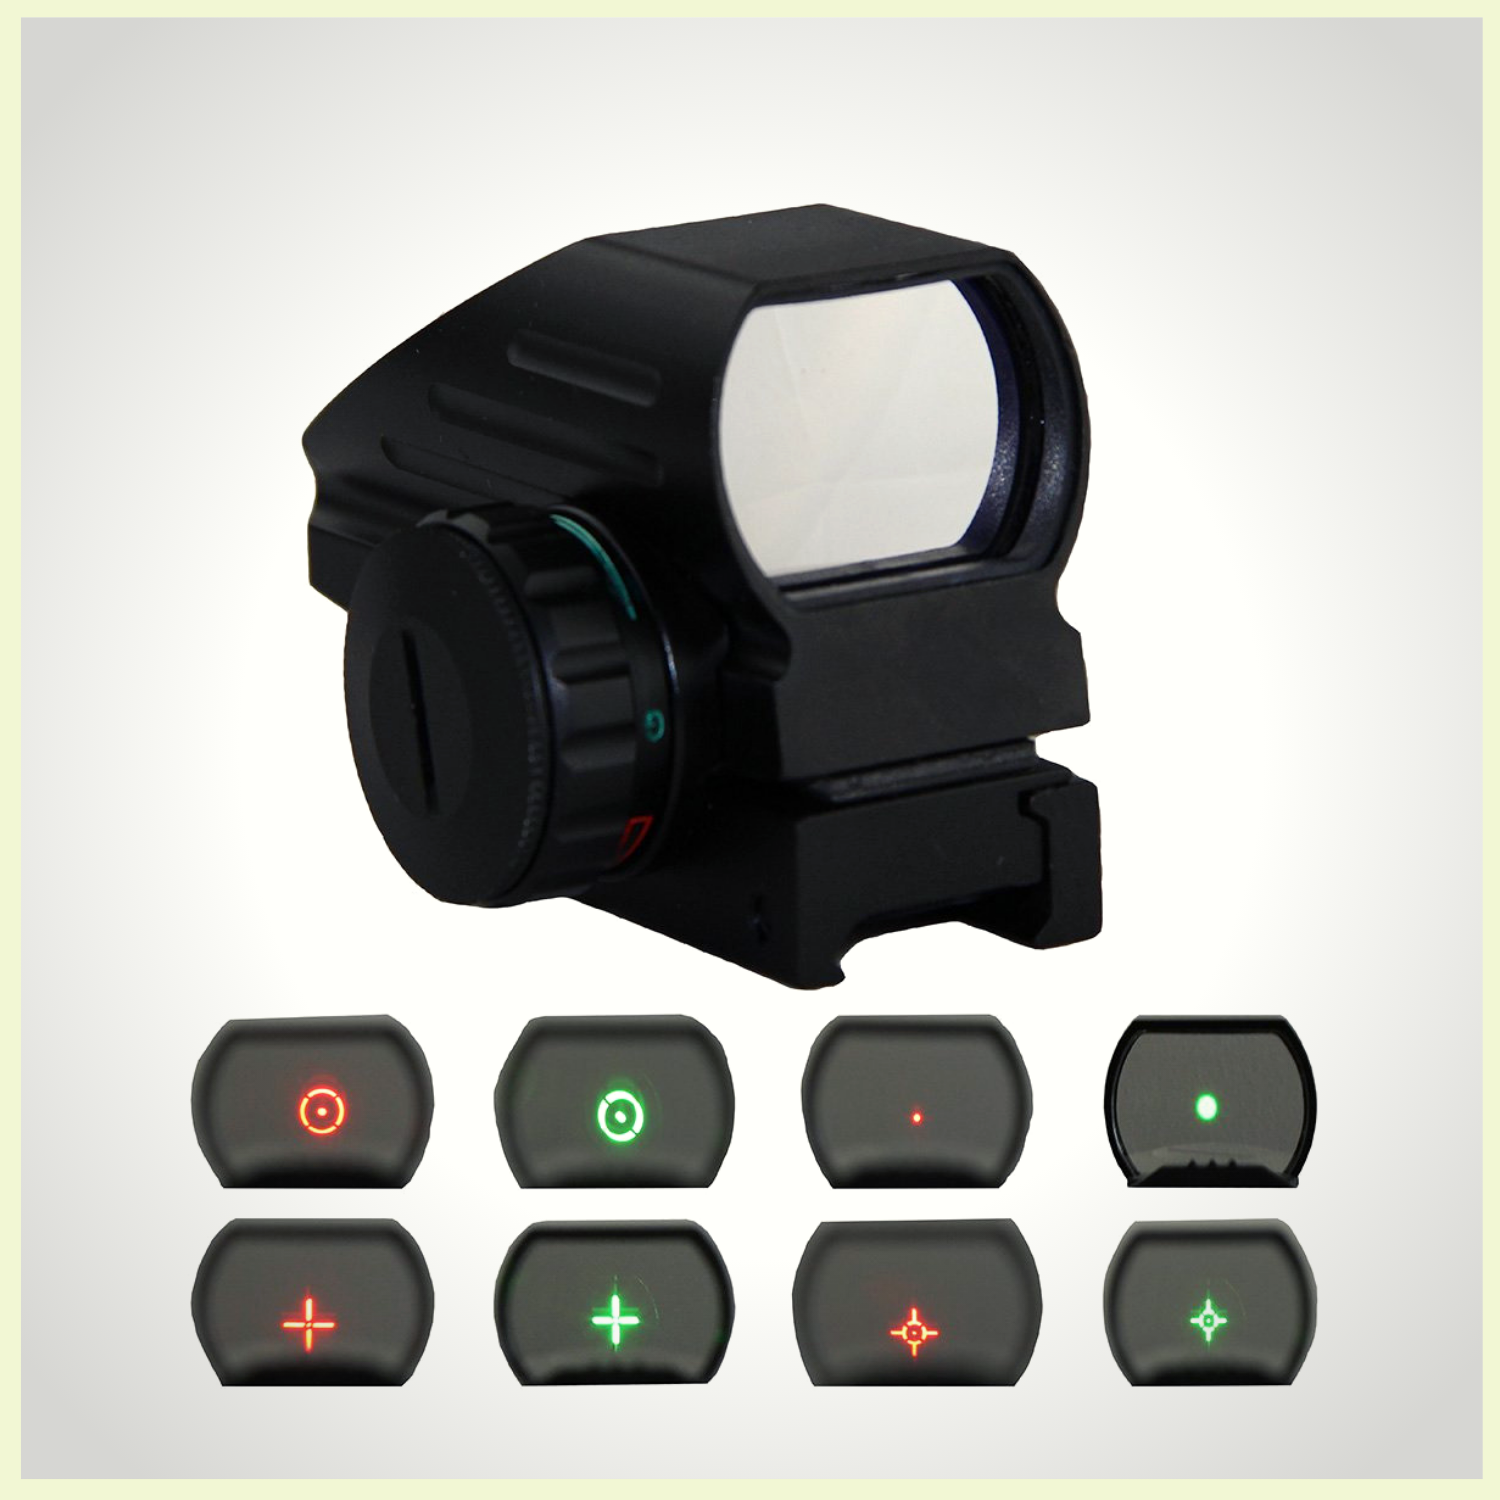 Constructed By Aluminum Alloy With Anodized Matte Black Processing Light Weight And Compact Design Anti Glare Reflective Coated Le Red Dot Sight Red Dots Red